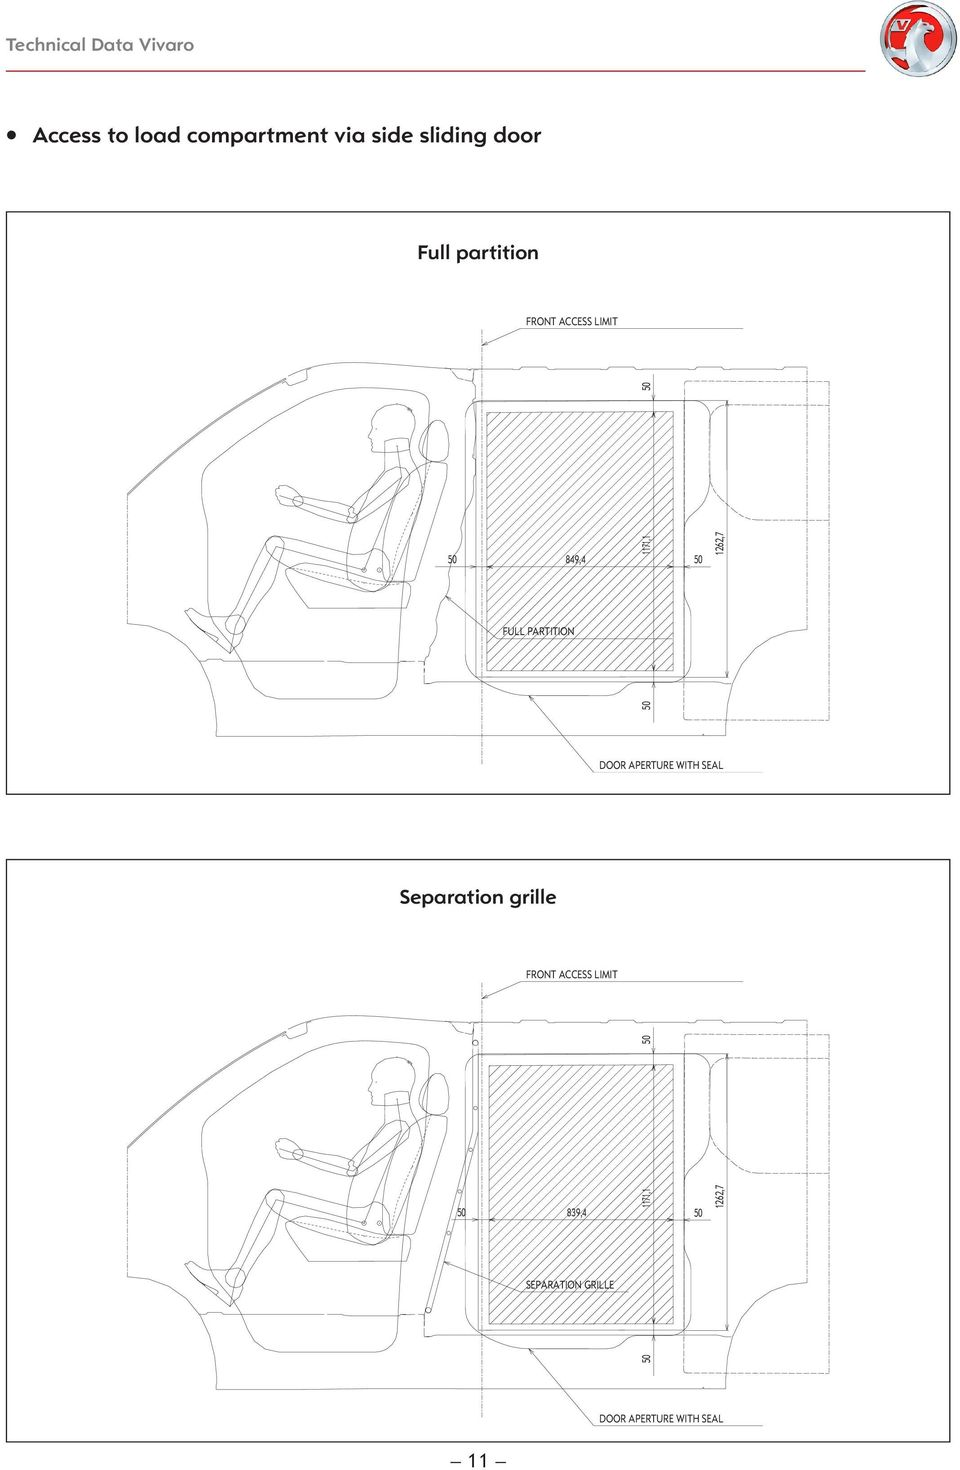 Technical Data Vivaro List Of Contents Pdf Demolition Derby Car Wiring Diagram 8494 11711 50 12627 Full Partition Door Aperture With Seal